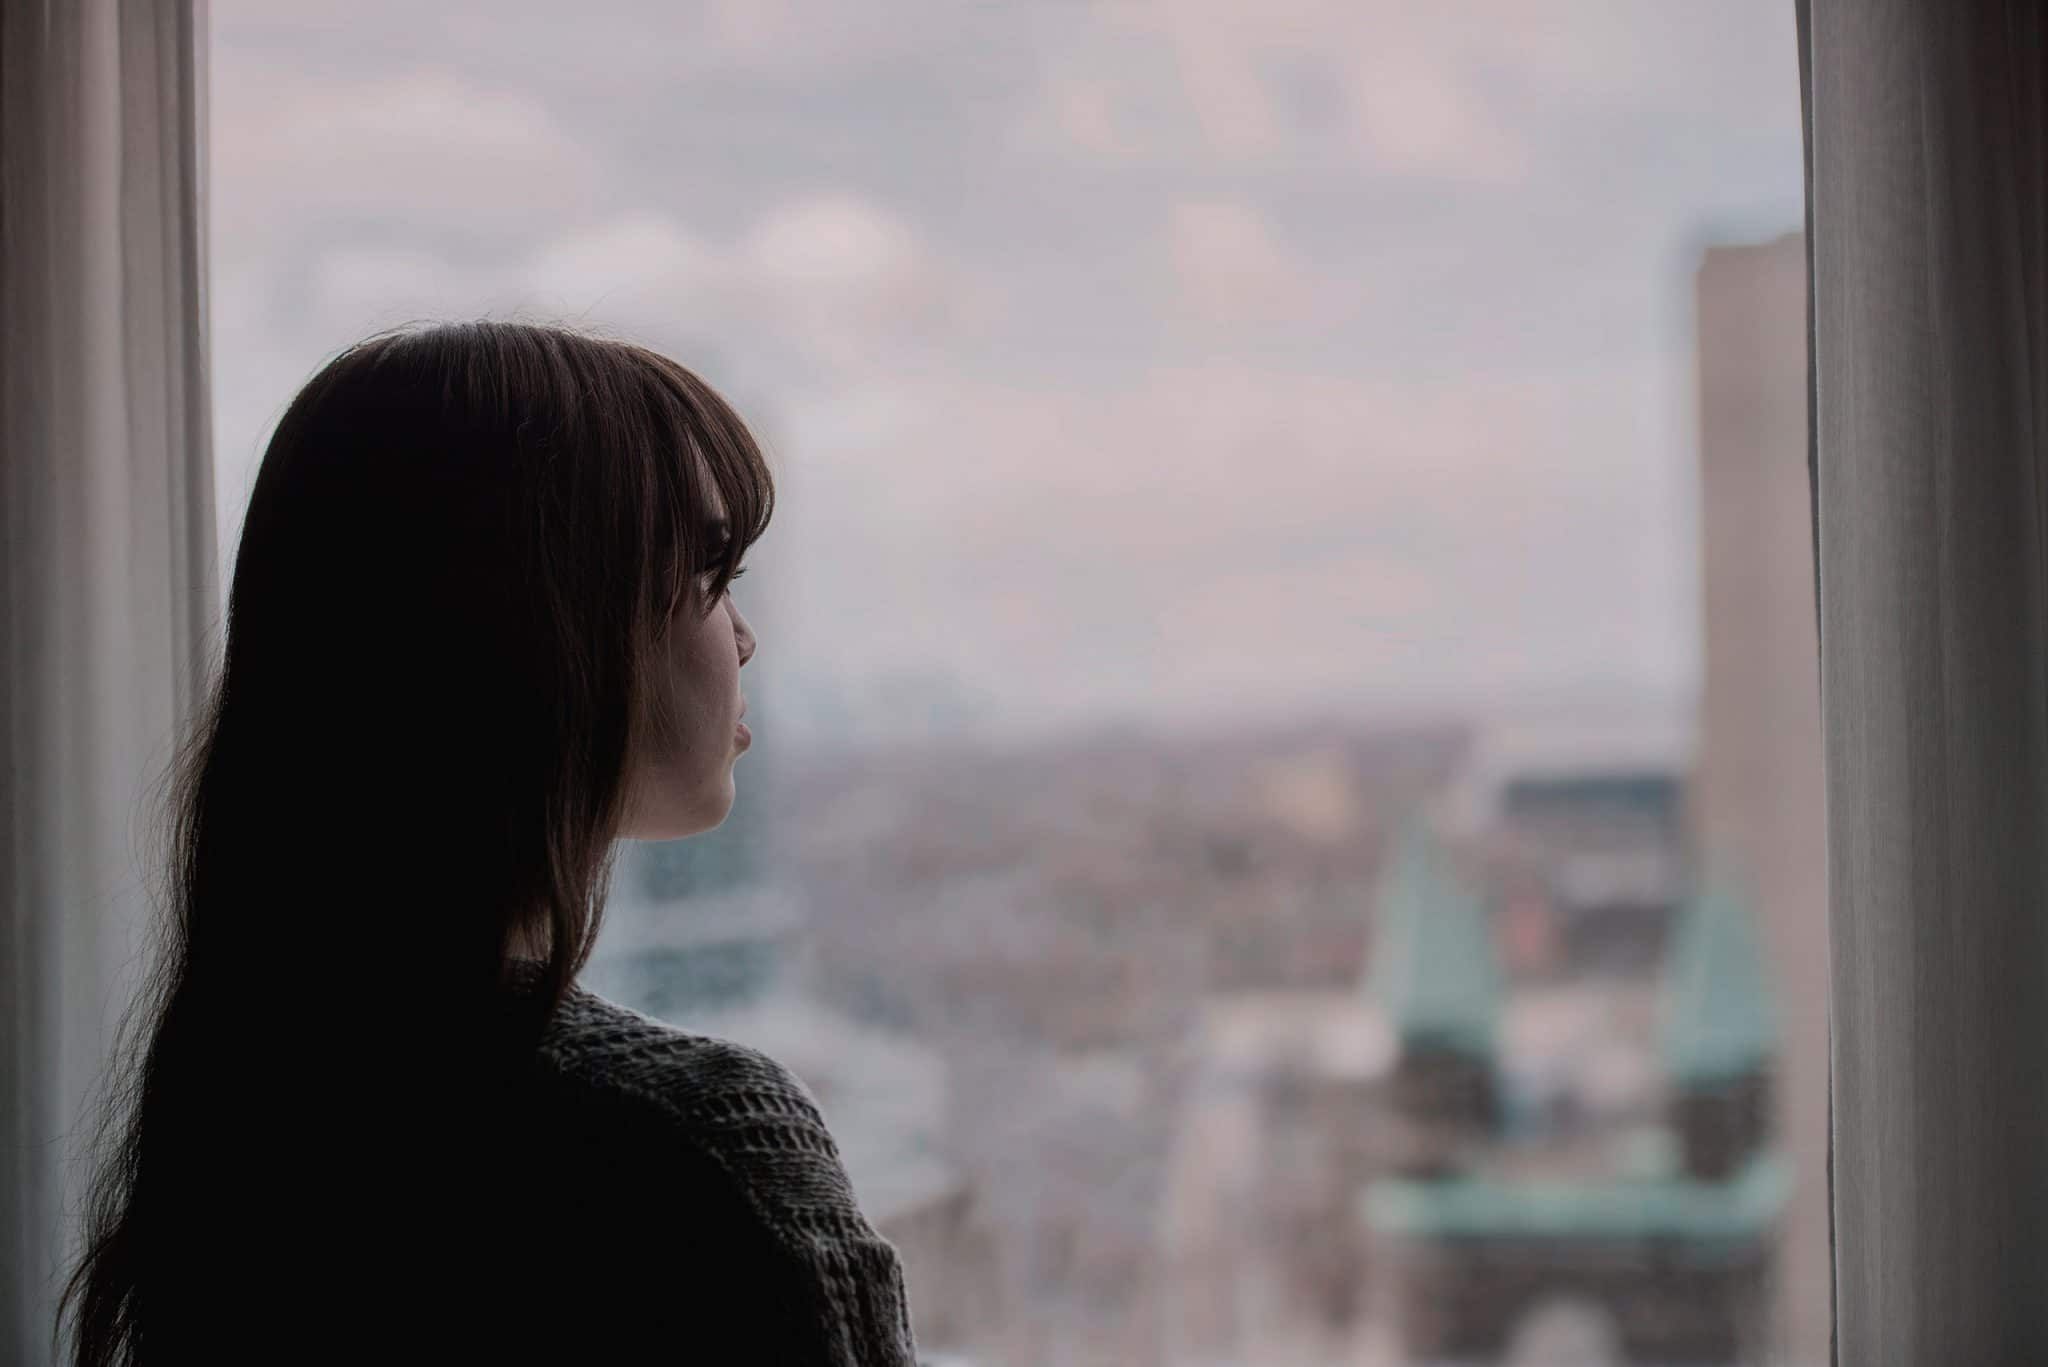 Woman staring out a window at a city.